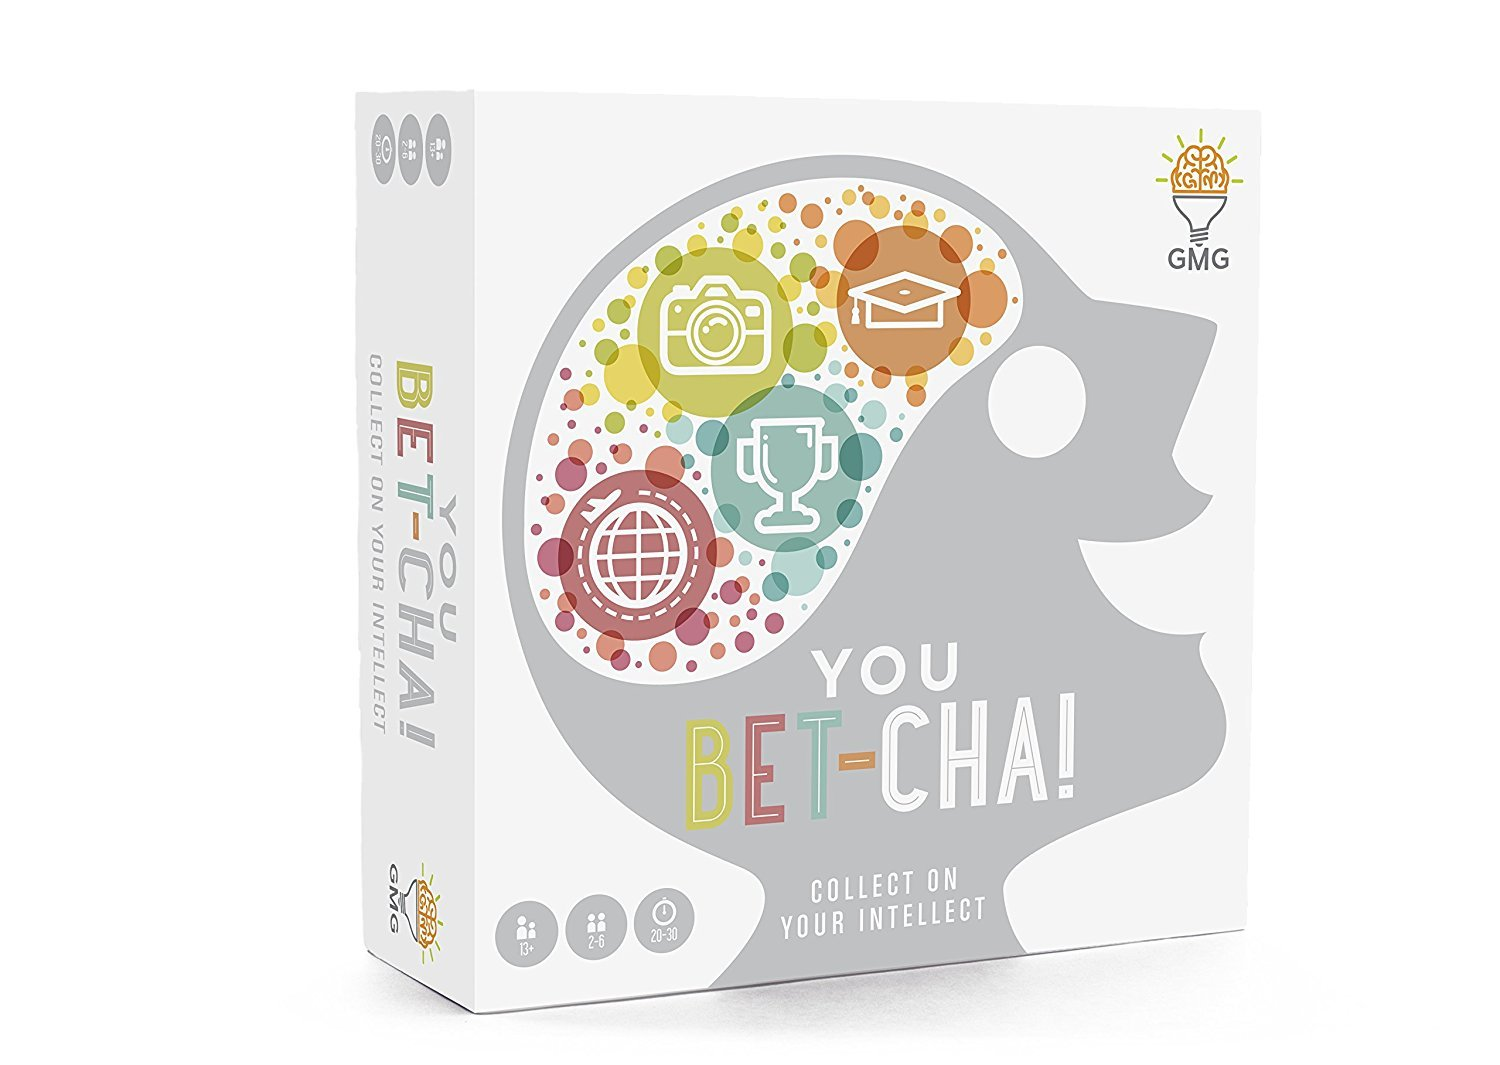 You Bet-Cha Collect on Your Intellect a Trivia Game with a Family Friendly Betting Twist by Gray Matters Games